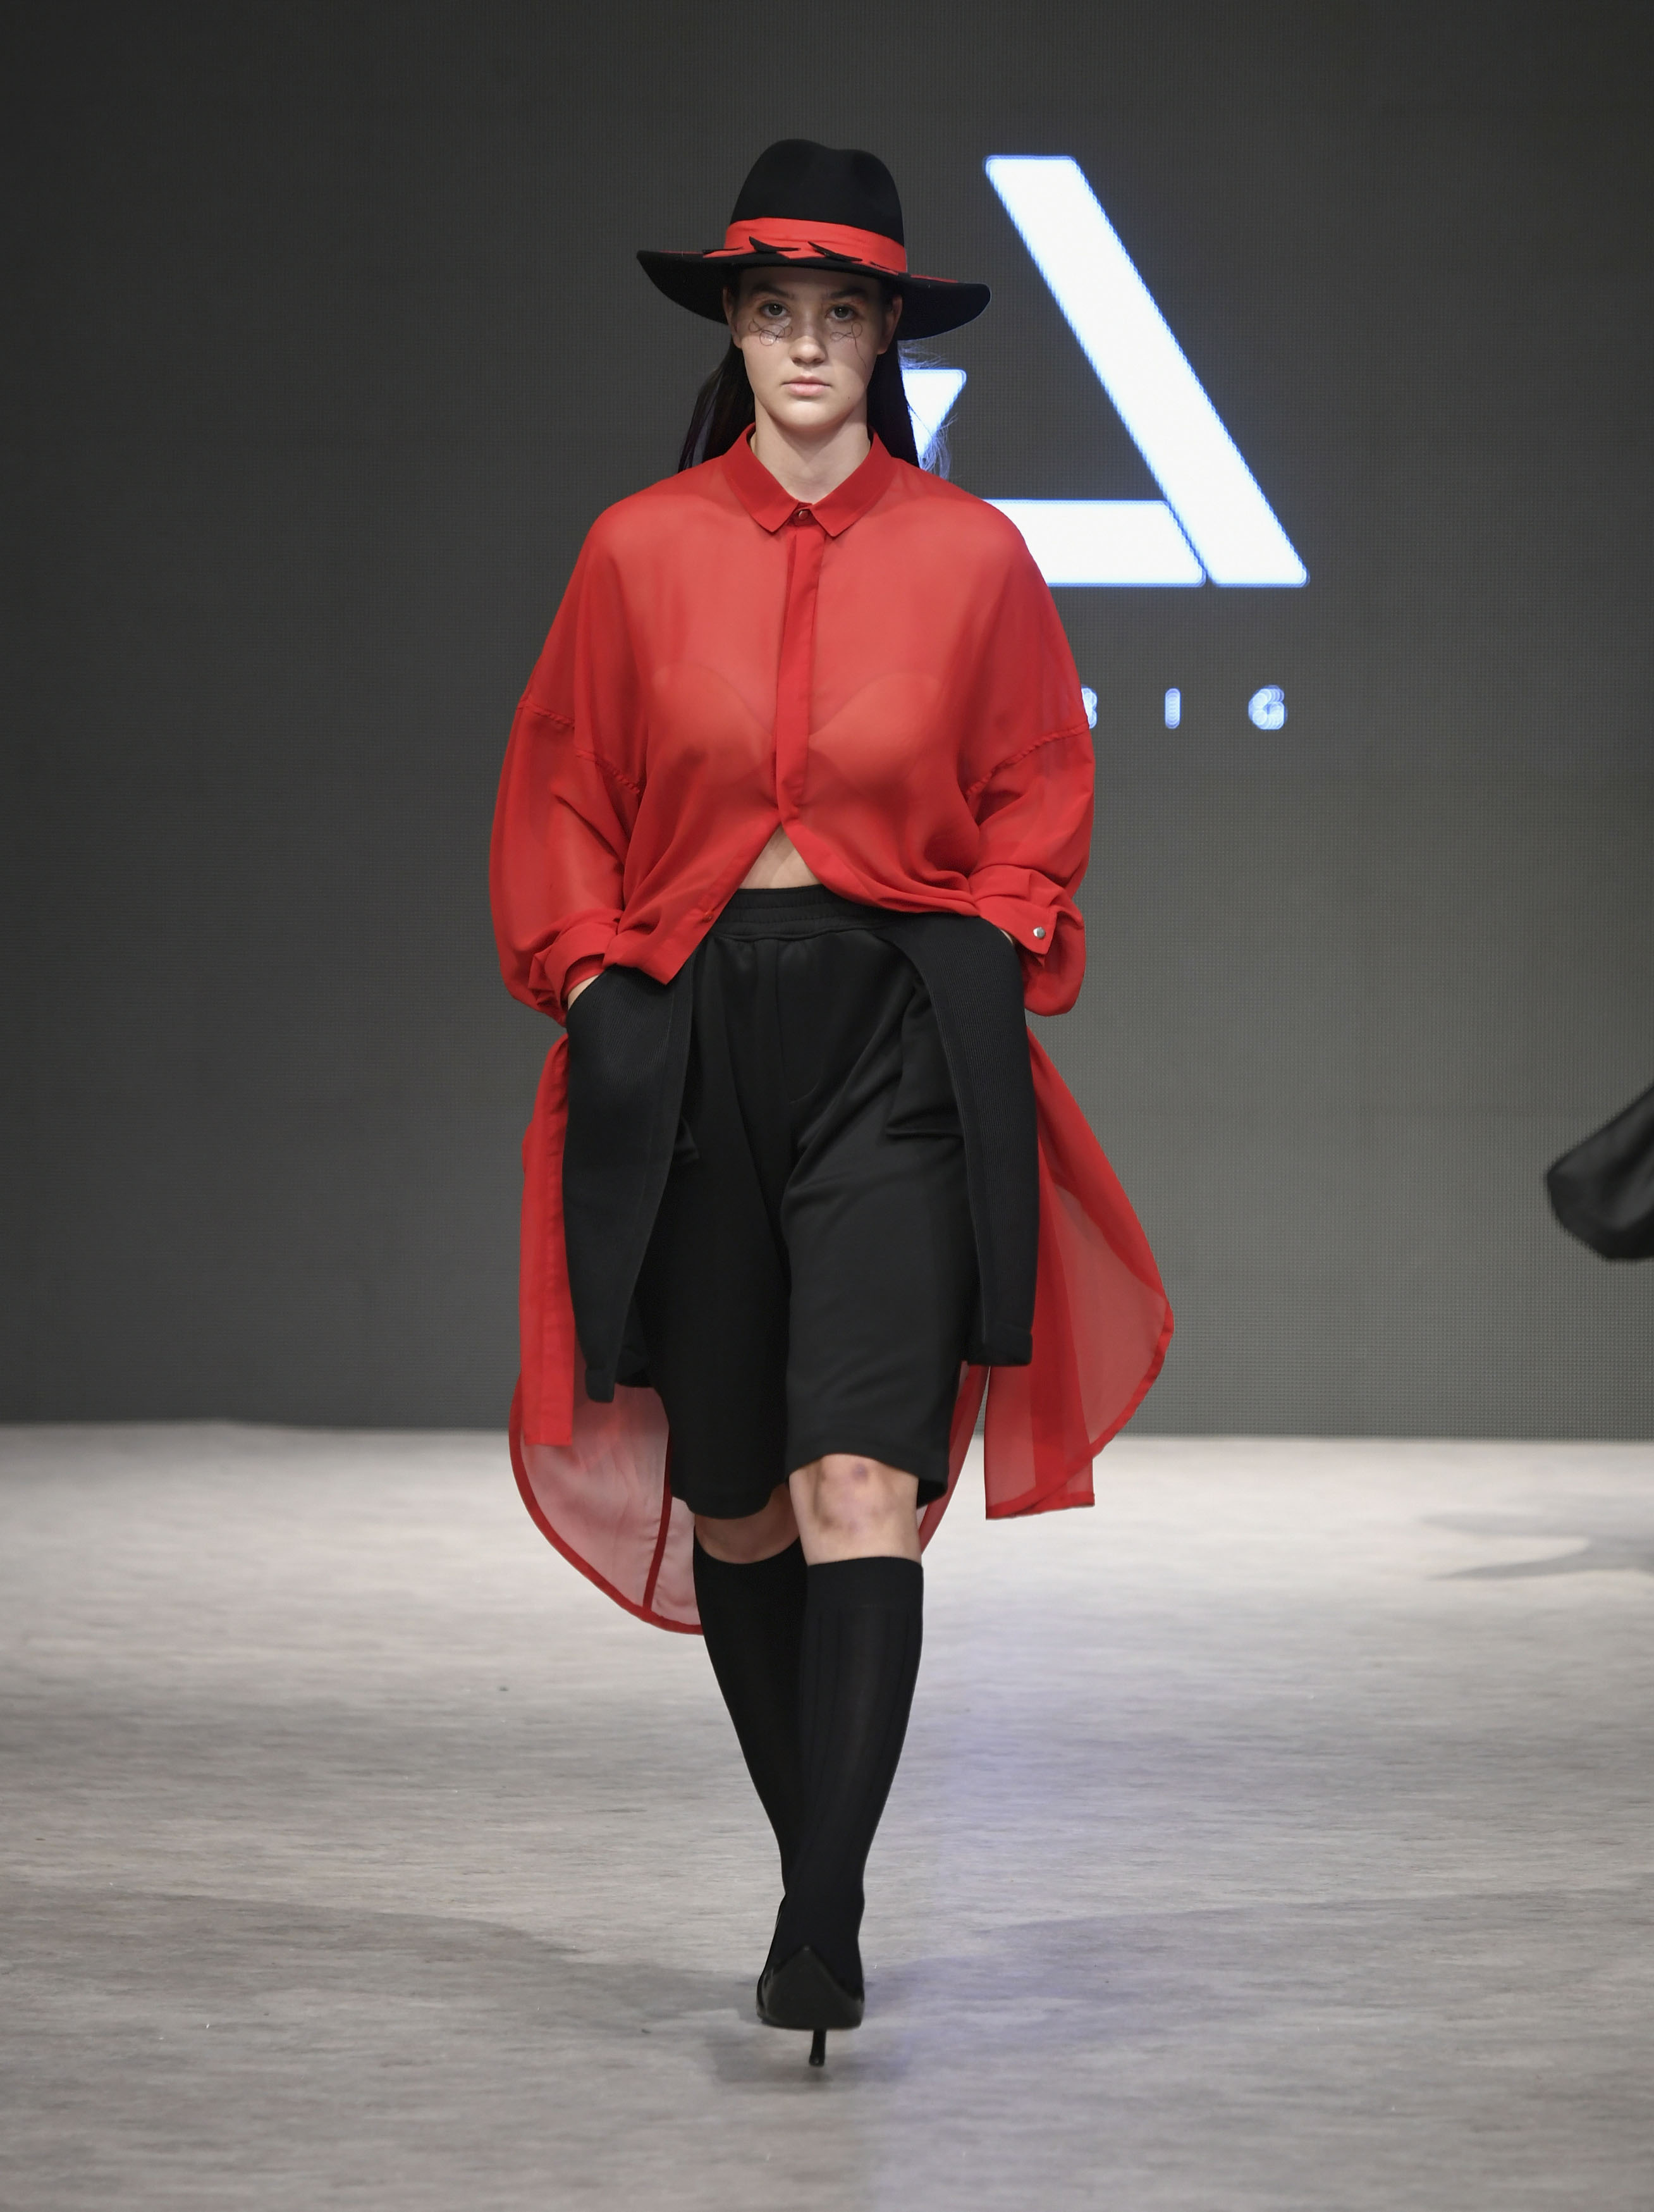 VANCOUVER, BC - SEPTEMBER 21:  A model walks the runway wearing JNORIG at Vancouver Fashion Week Spring/Summer 19 - Day 5 on September 21, 2018 in Vancouver, Canada.  (Photo by Arun Nevader/Getty Images for VFW Management INC)